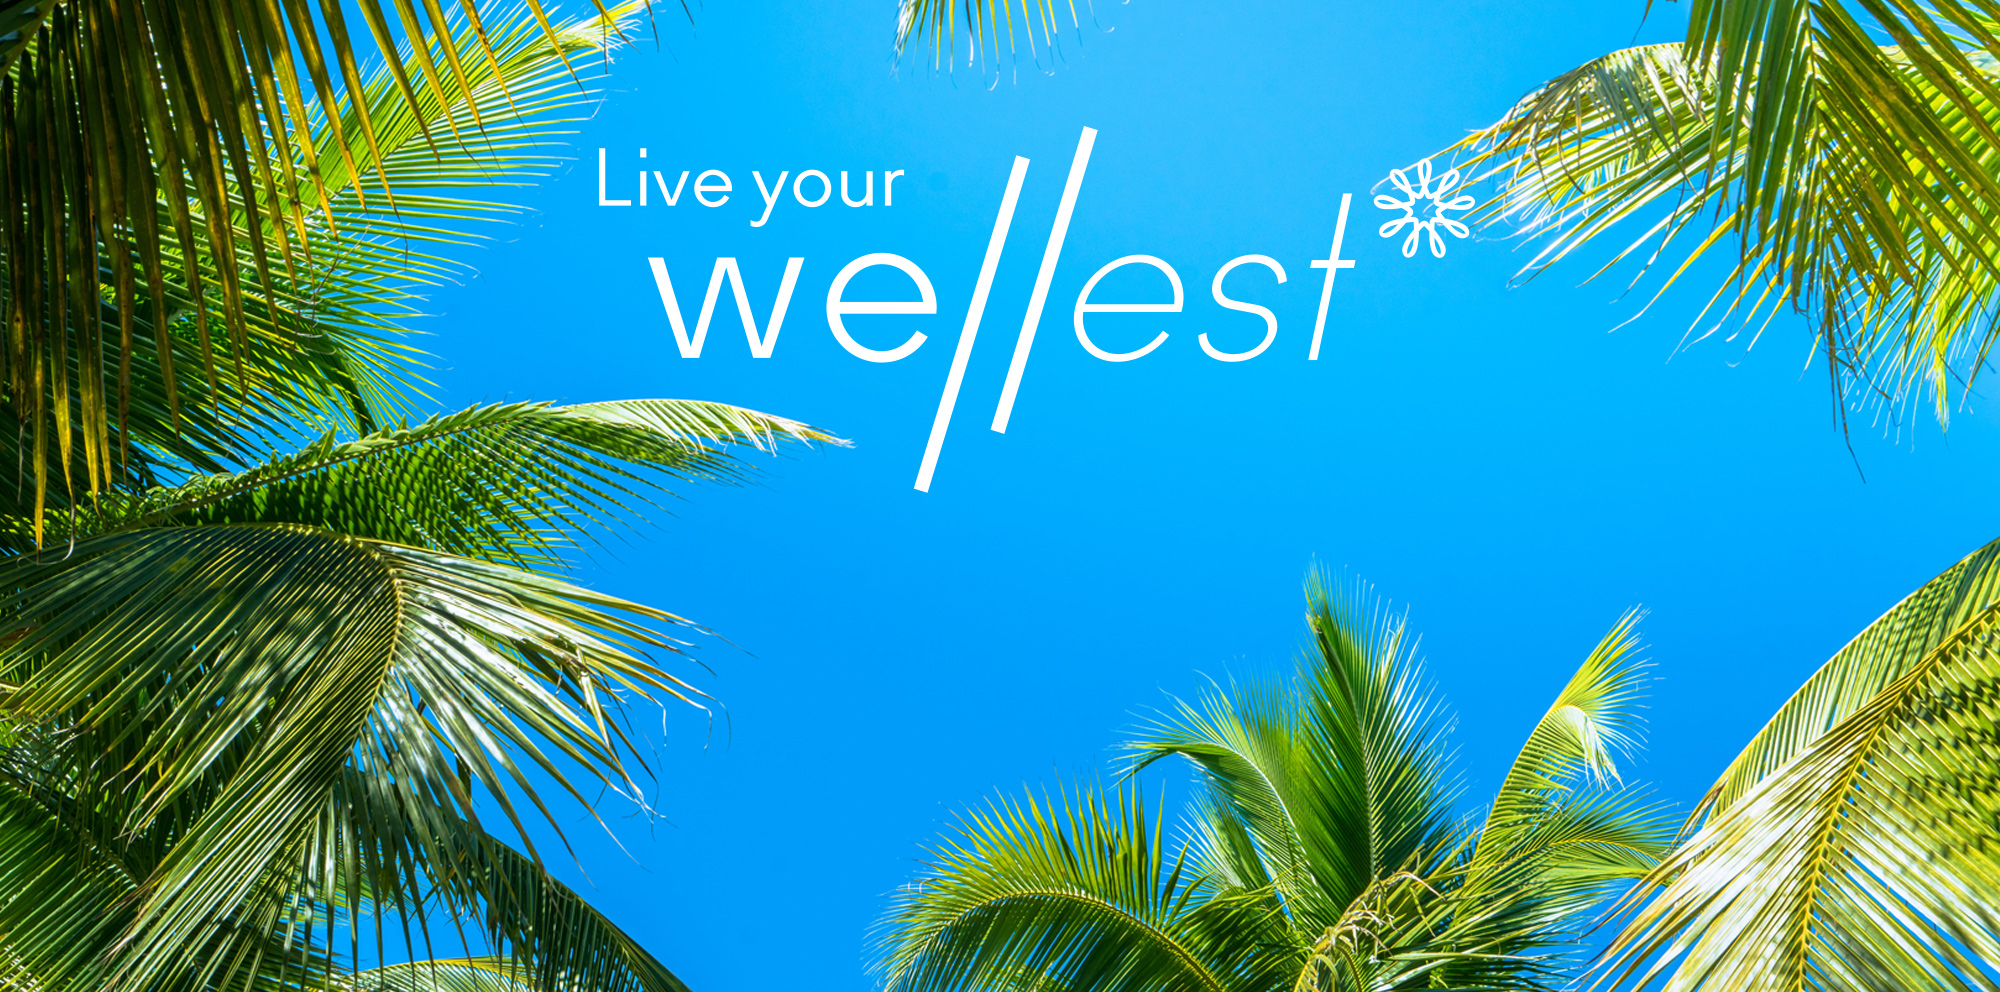 Live your Wellest